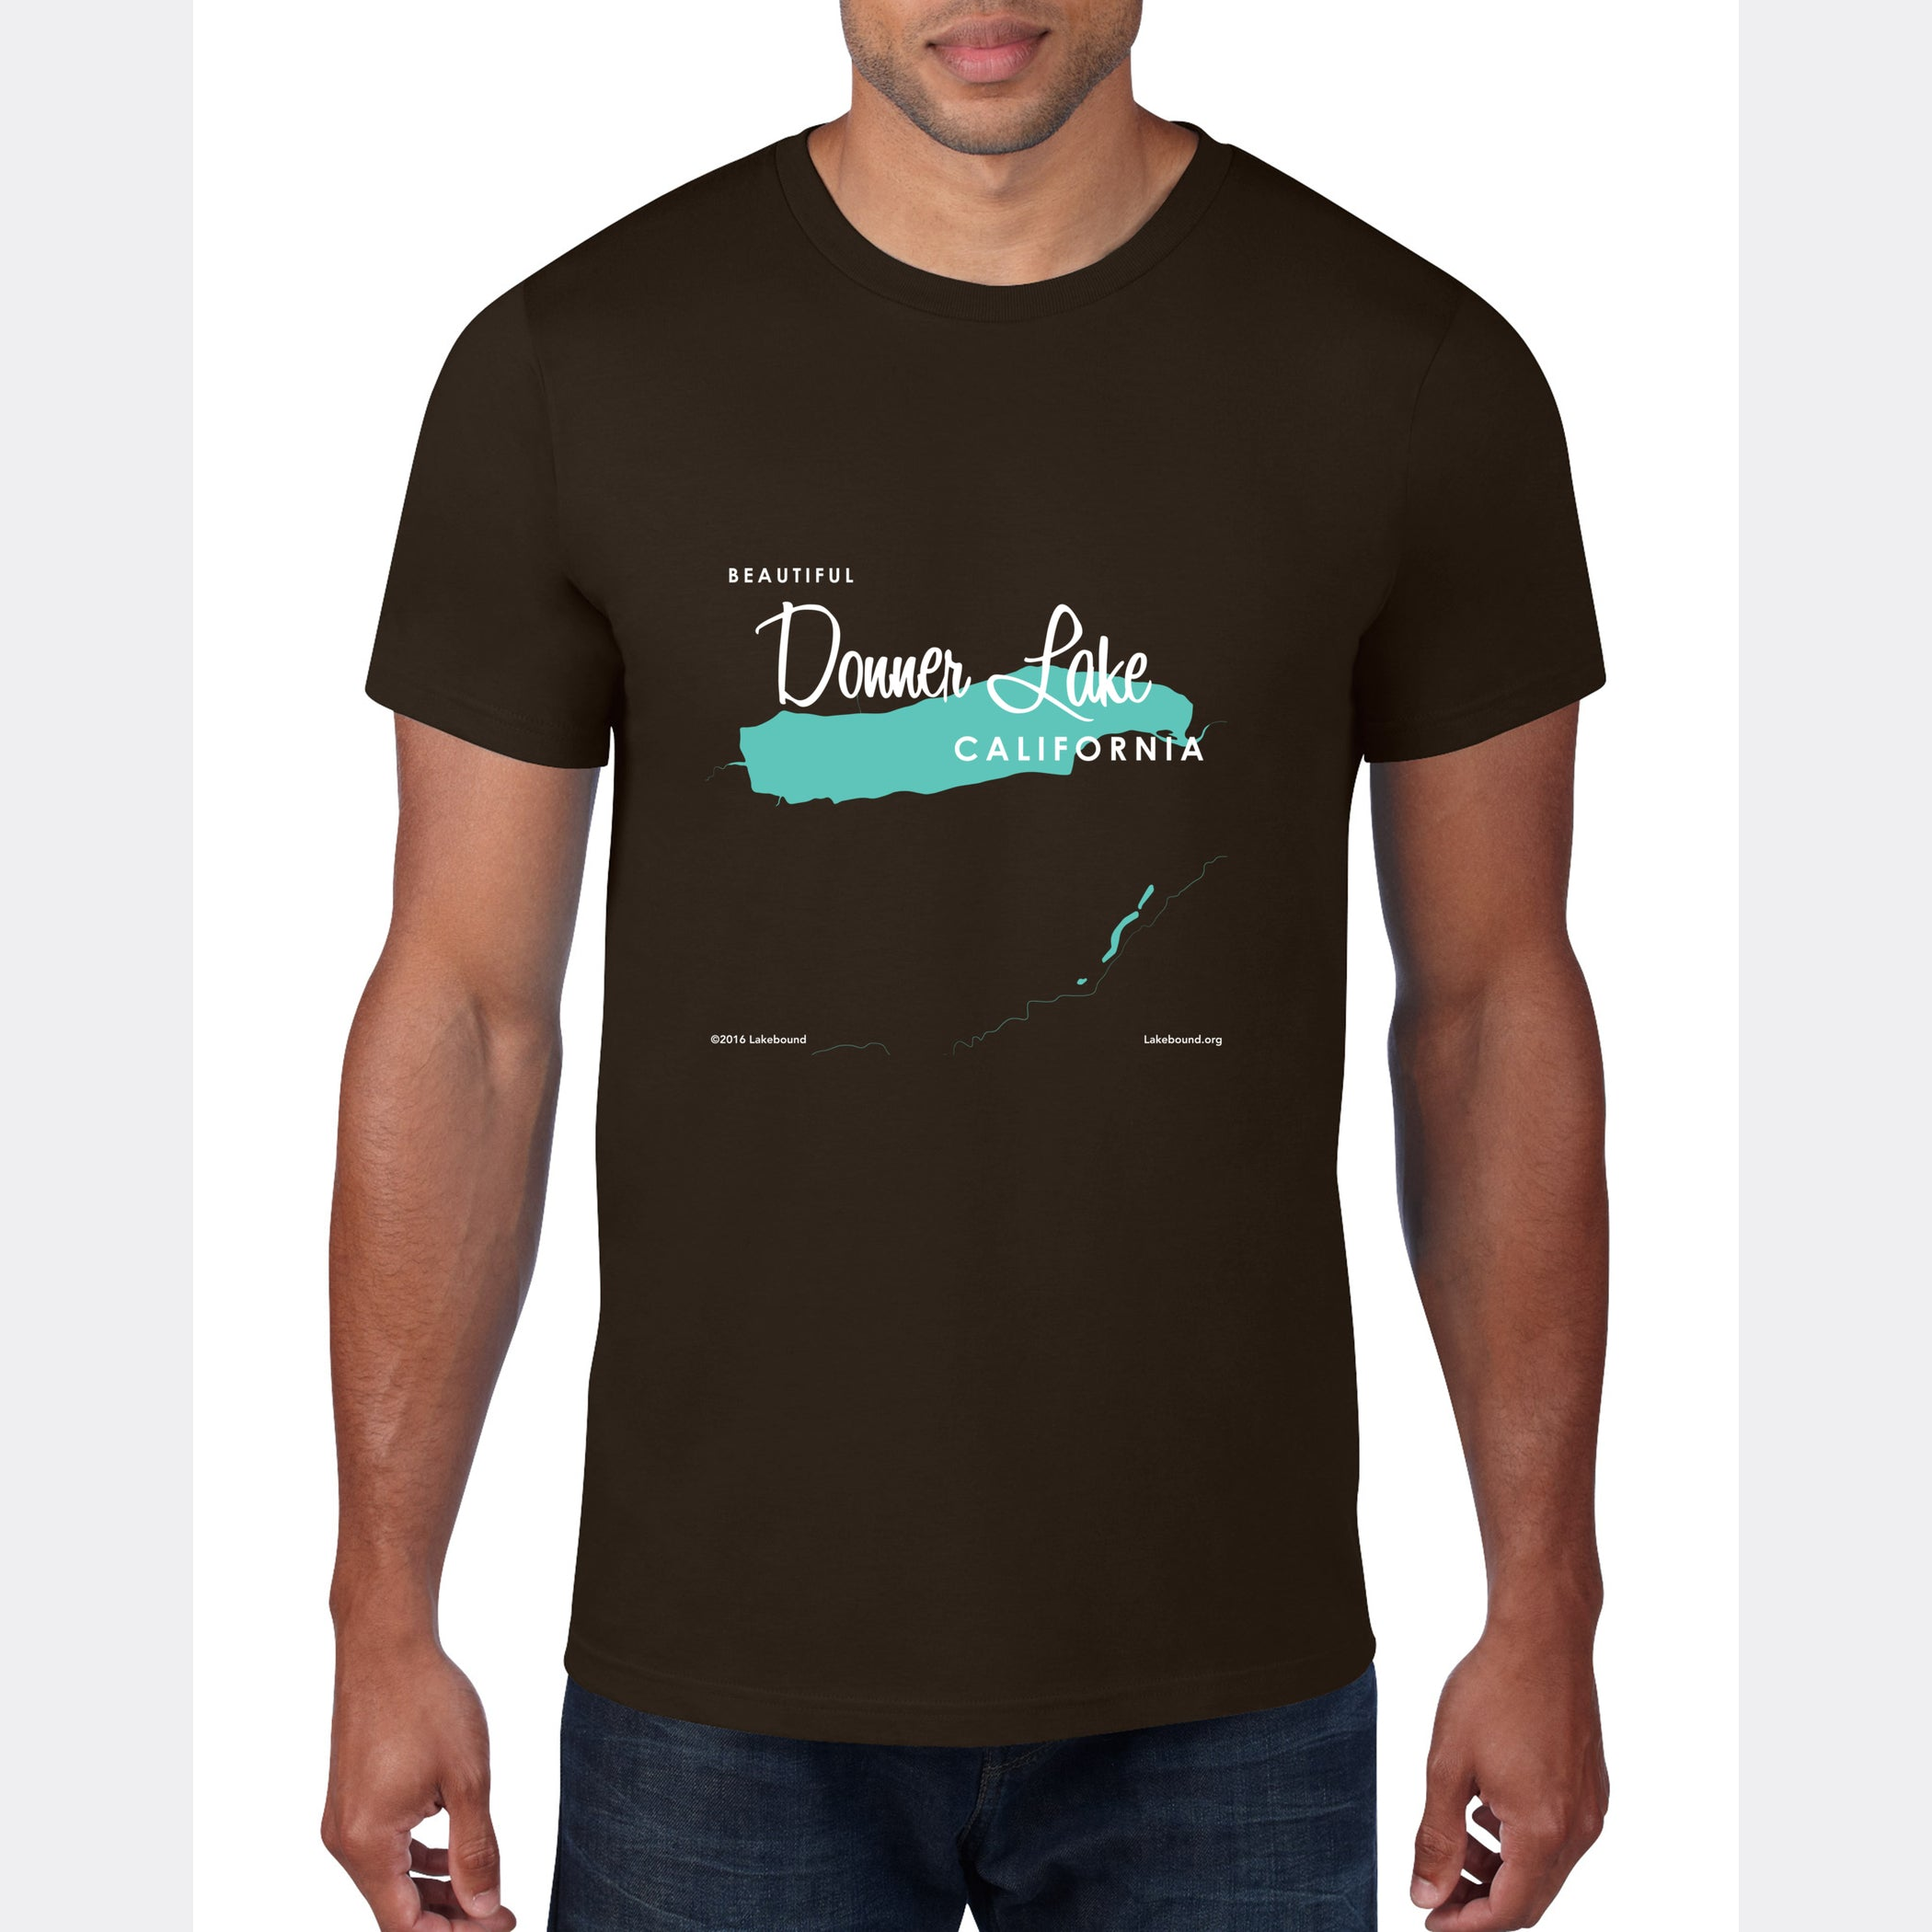 Donner Lake California, T-Shirt